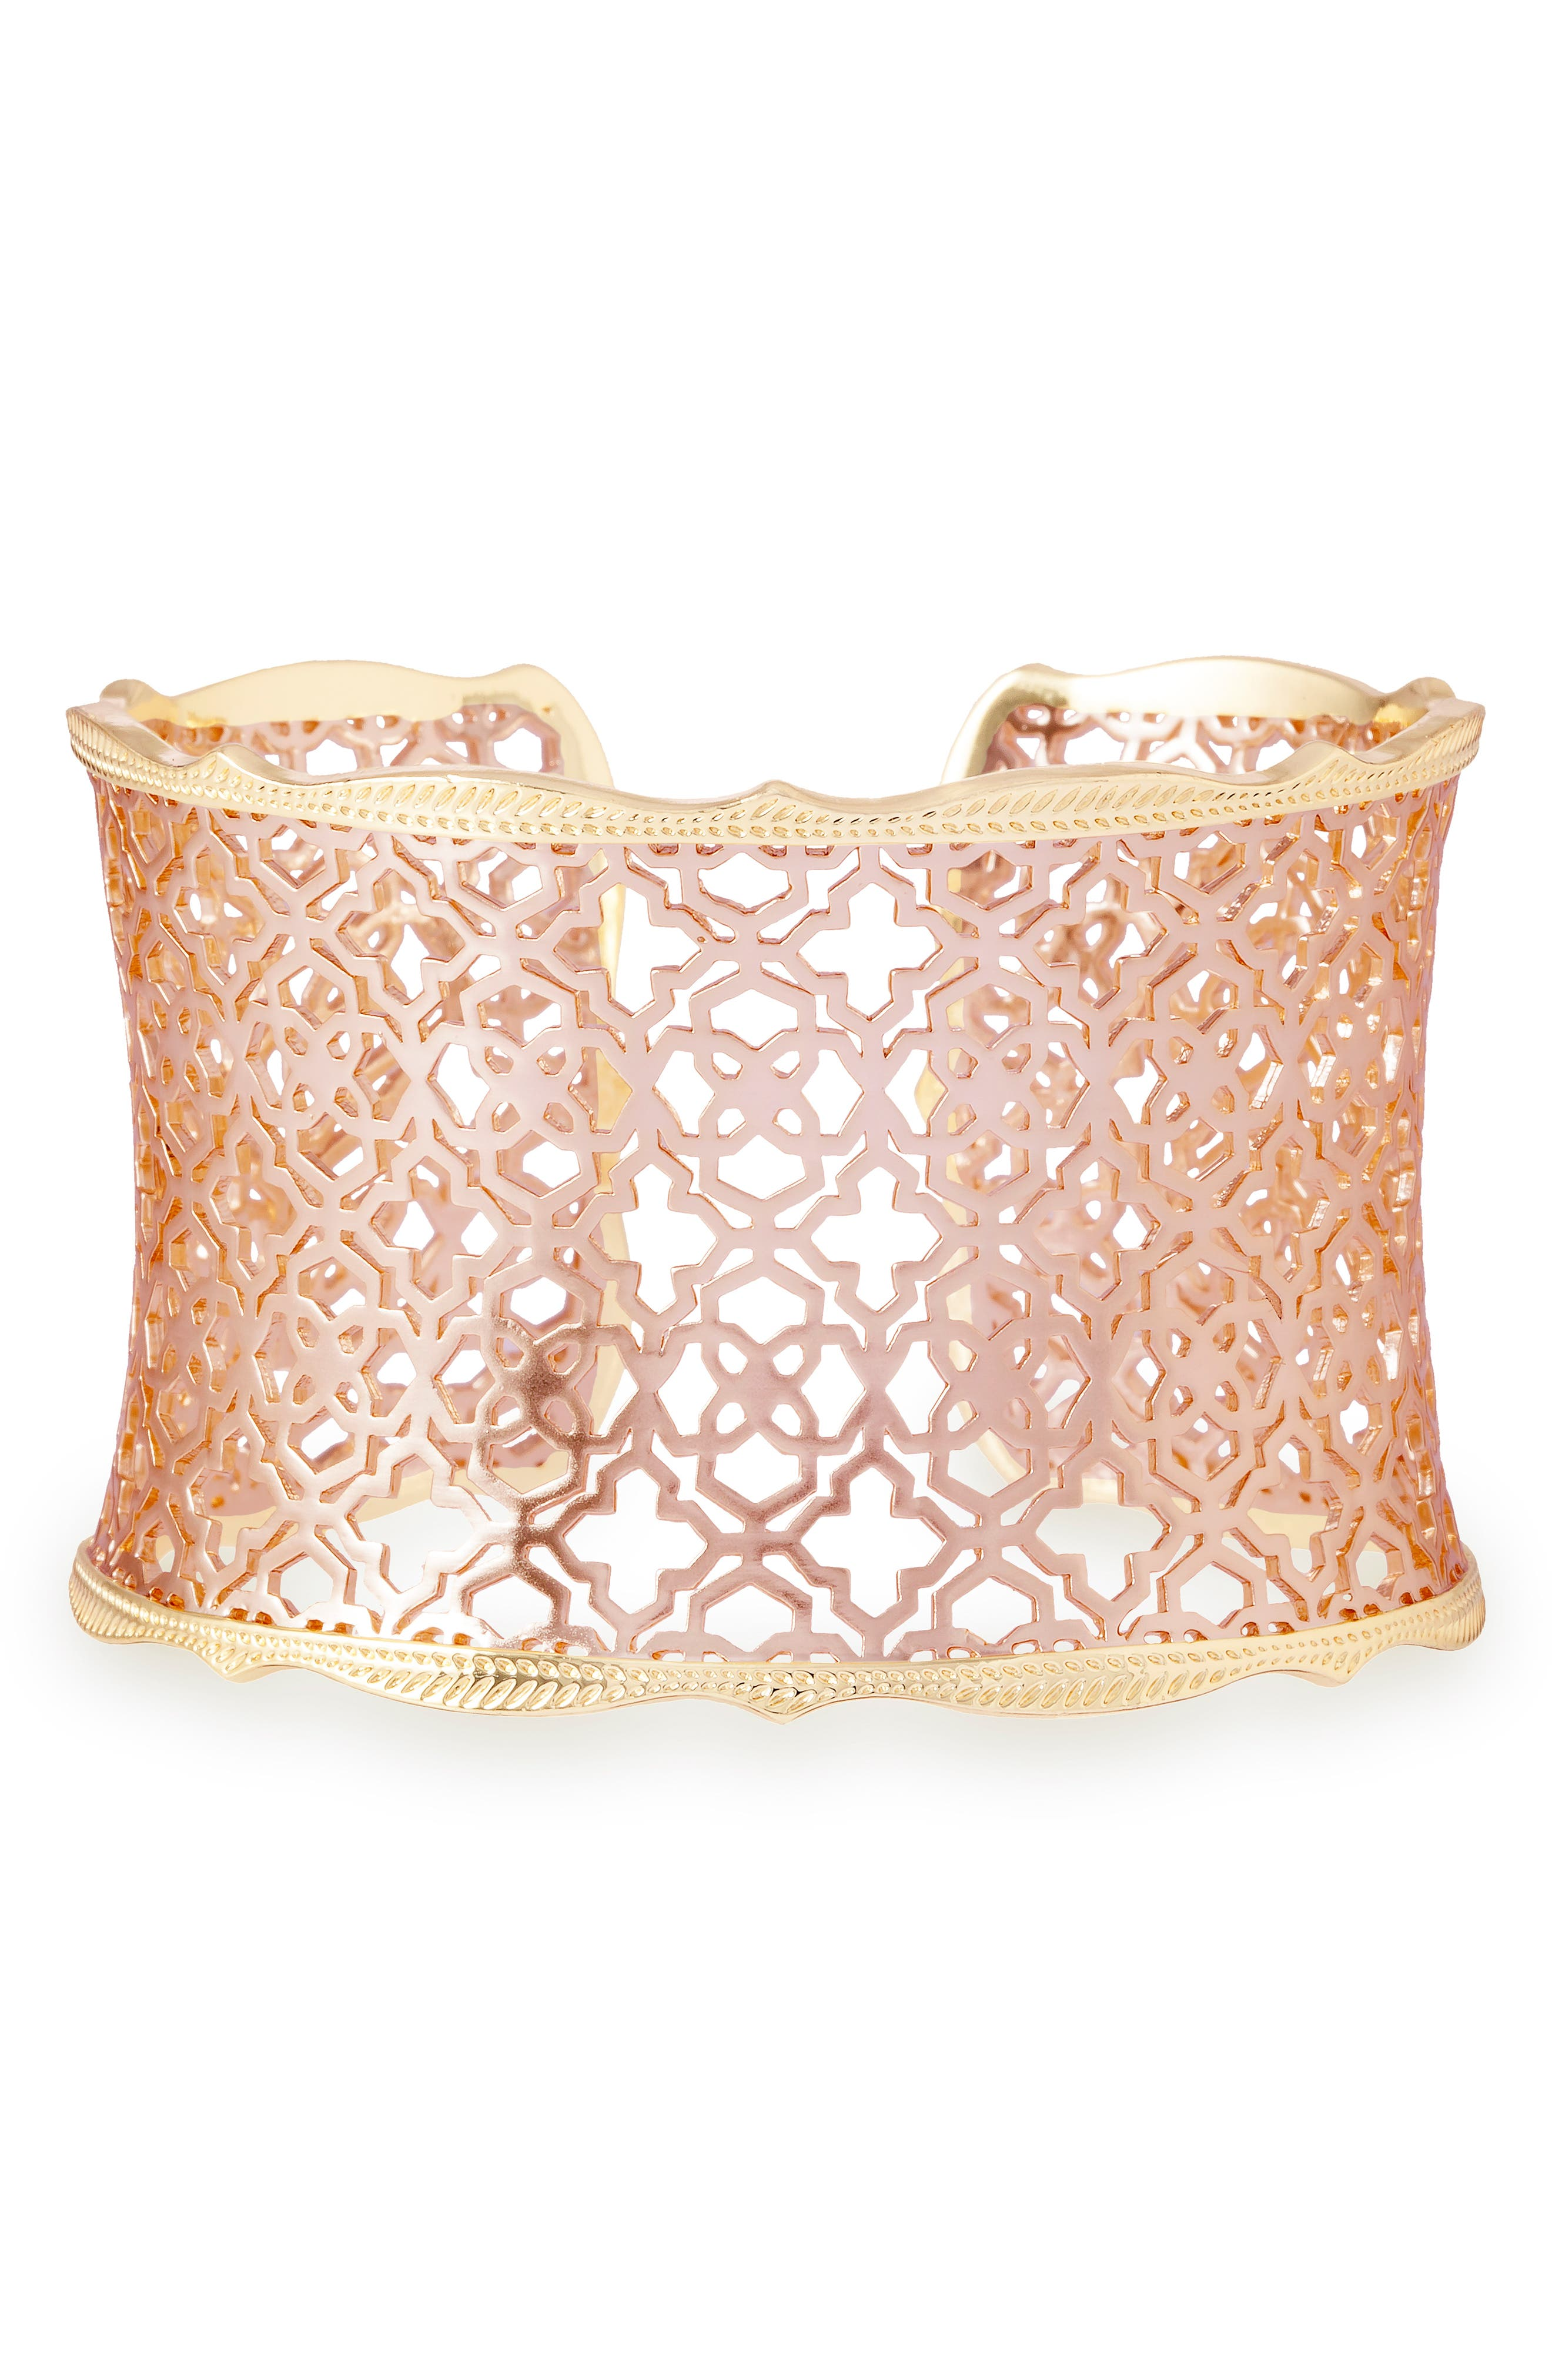 'Mystic Bazaar - Candice' Wide Cuff,                             Alternate thumbnail 4, color,                             Rose Gold/ Gold